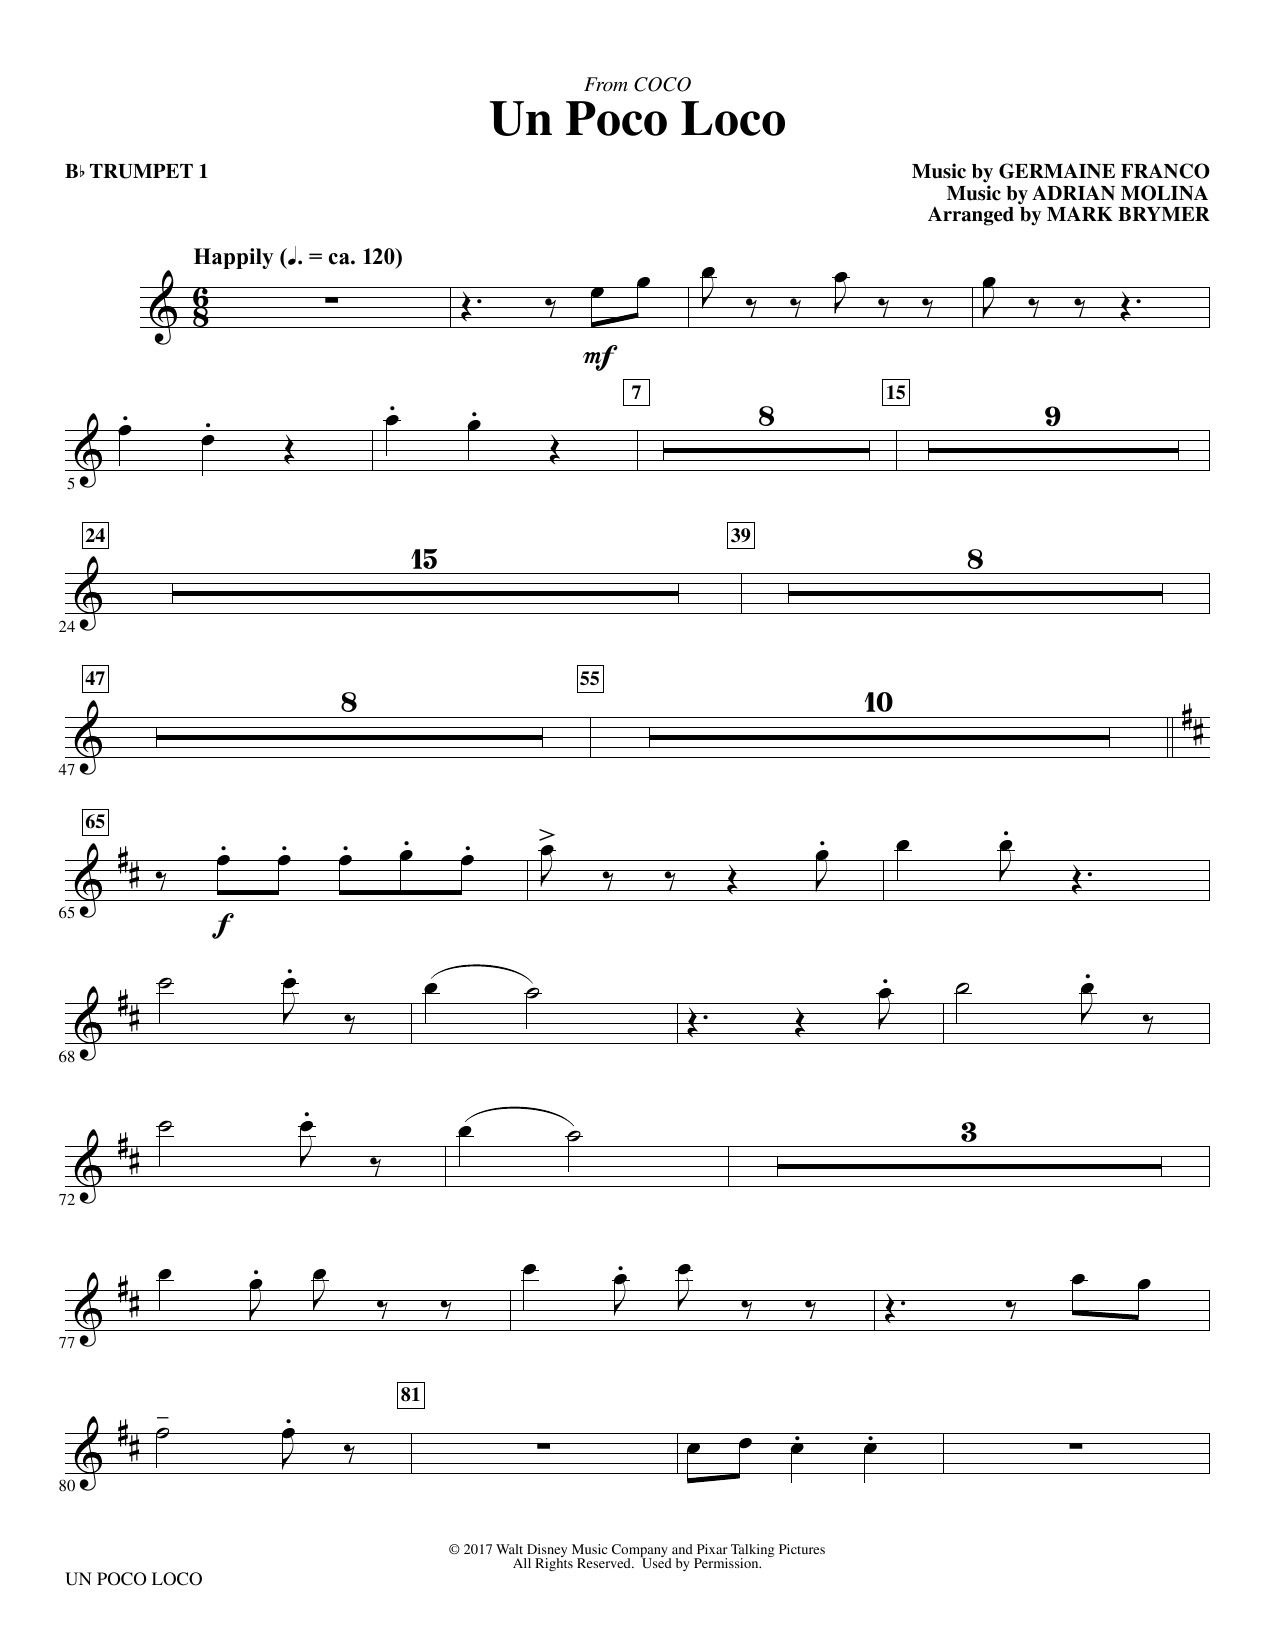 Germaine Franco & Adrian Molina Un Poco Loco (from Coco) (arr. Mark Brymer) - Trumpet 1 sheet music notes and chords. Download Printable PDF.